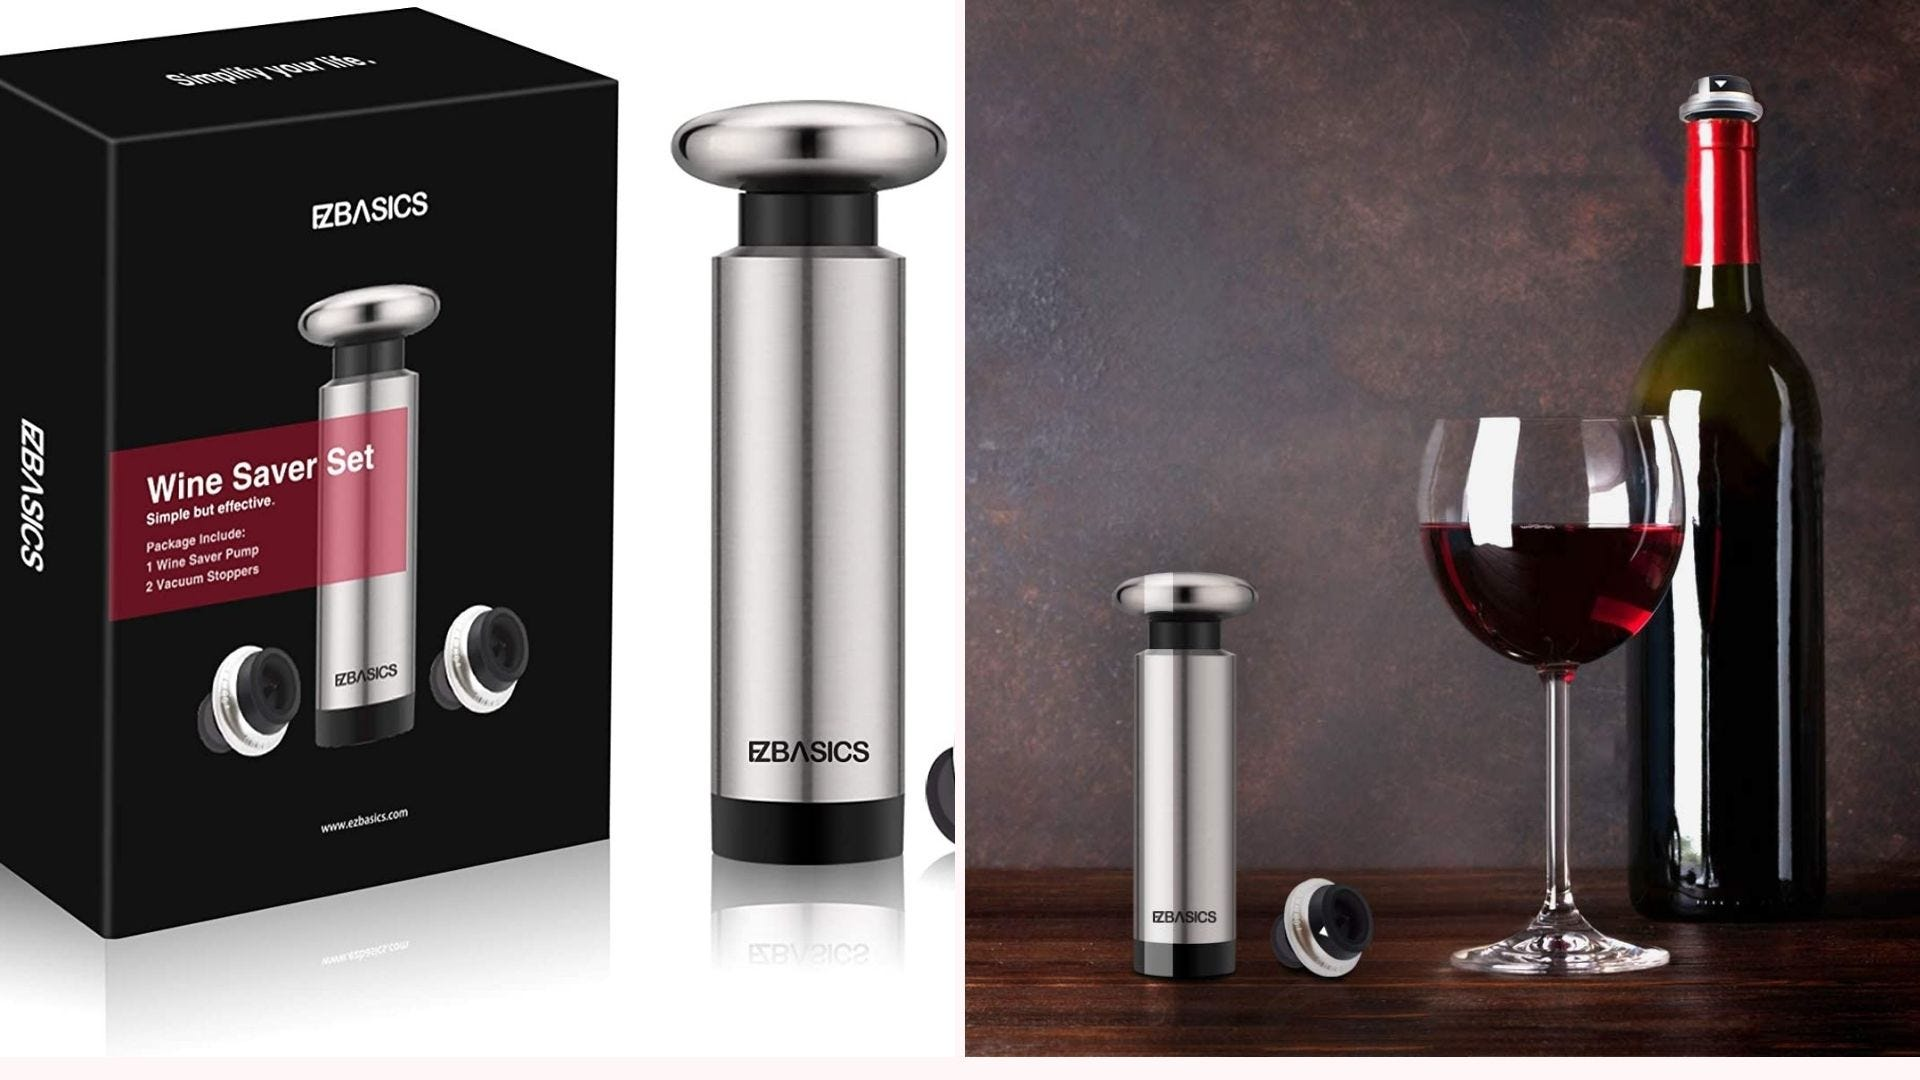 Wine vacuum sealer and stopper, and a bottle and glass of red wine.